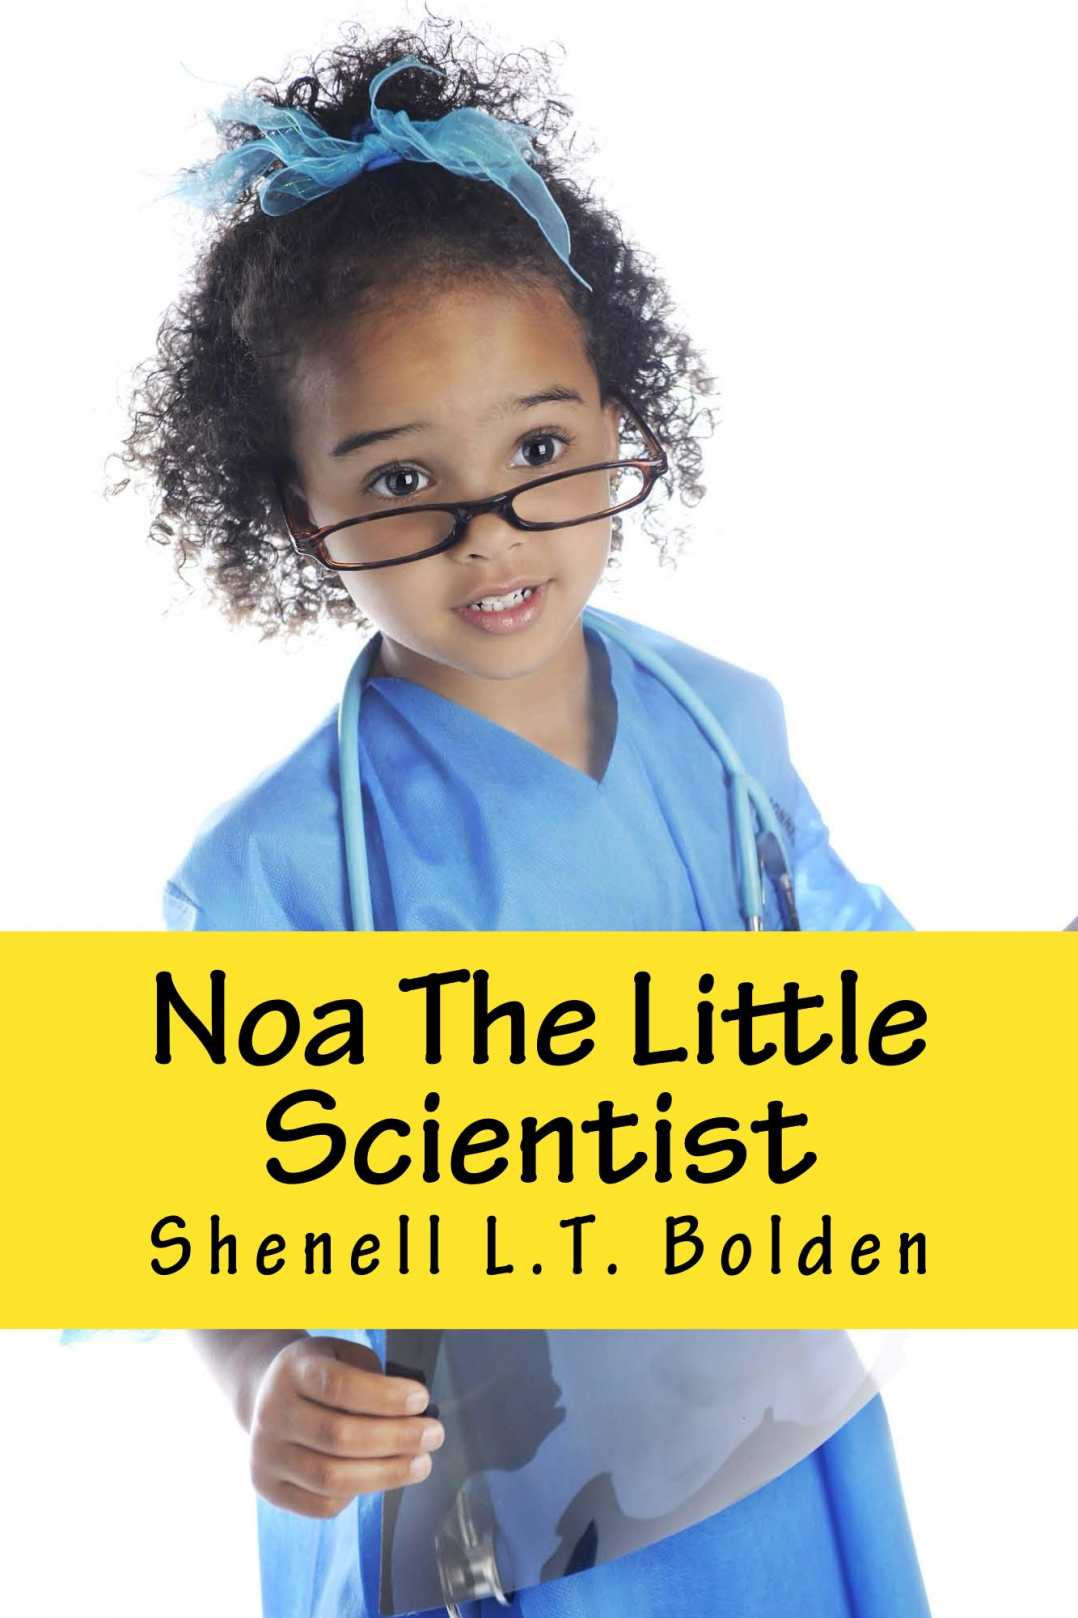 The First Book Release in the Girls in Science Series.